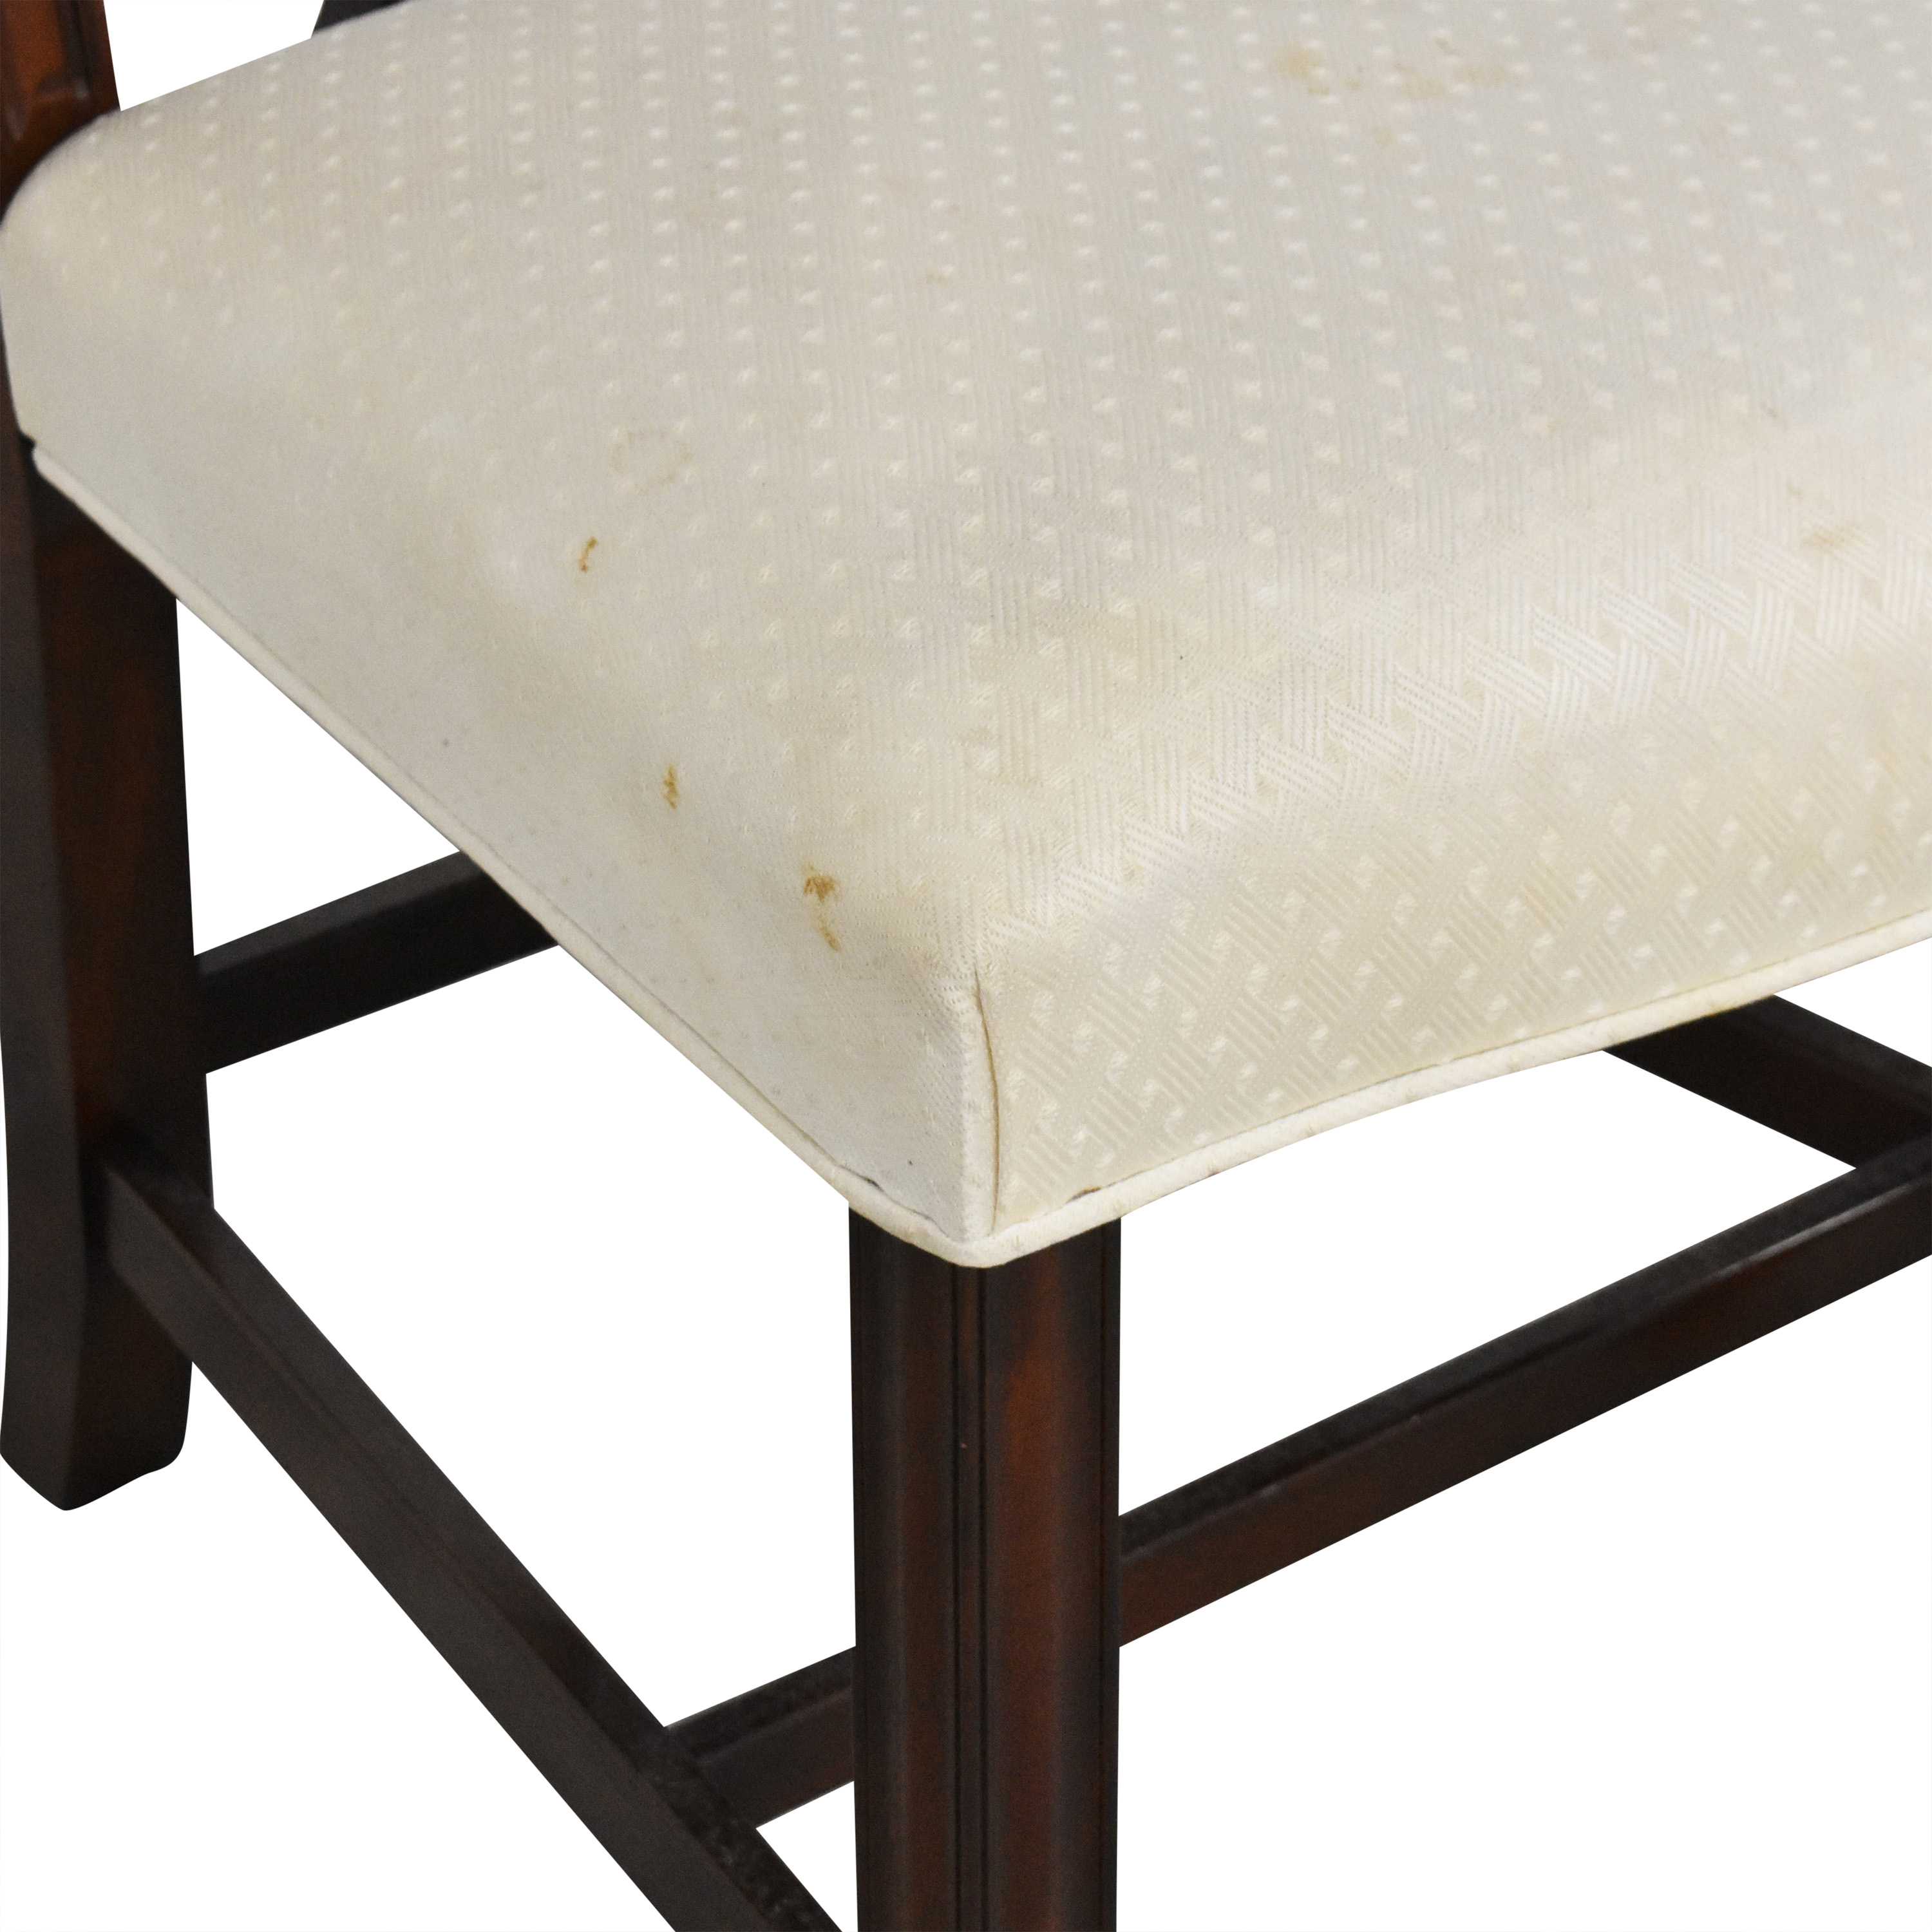 Kindel Kindel Chippendale Dining Side Chairs dimensions